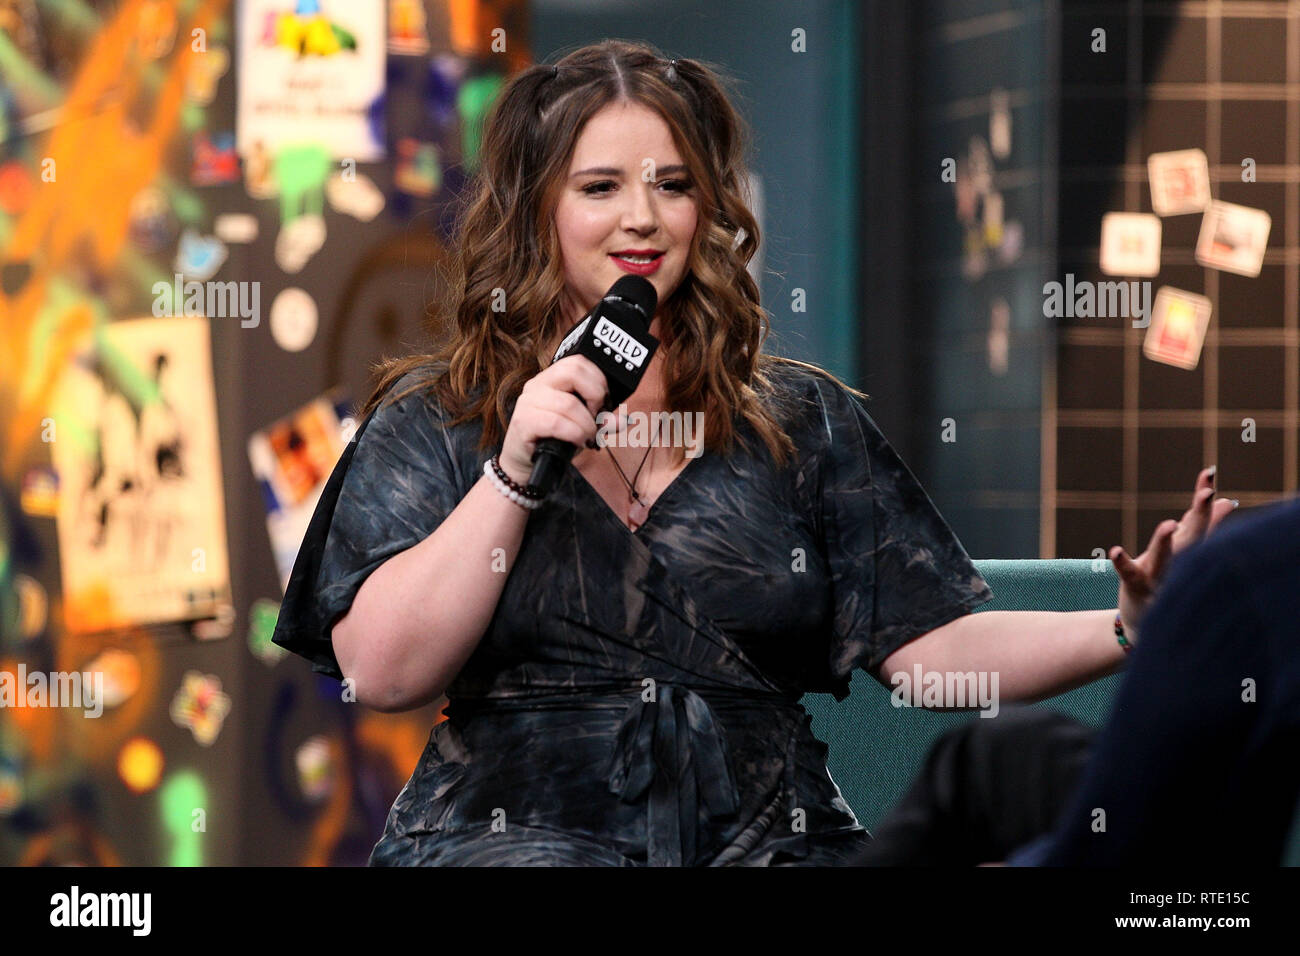 New York, USA. 28 Feb, 2019. Kether Donohue at The Thursday, Feb 28, 2019 BUILD Series Inside Candids discussing 'You're The Worst' at BUILD Studio in New York, USA. Credit: Steve Mack/S.D. Mack Pictures/Alamy Live News - Stock Image